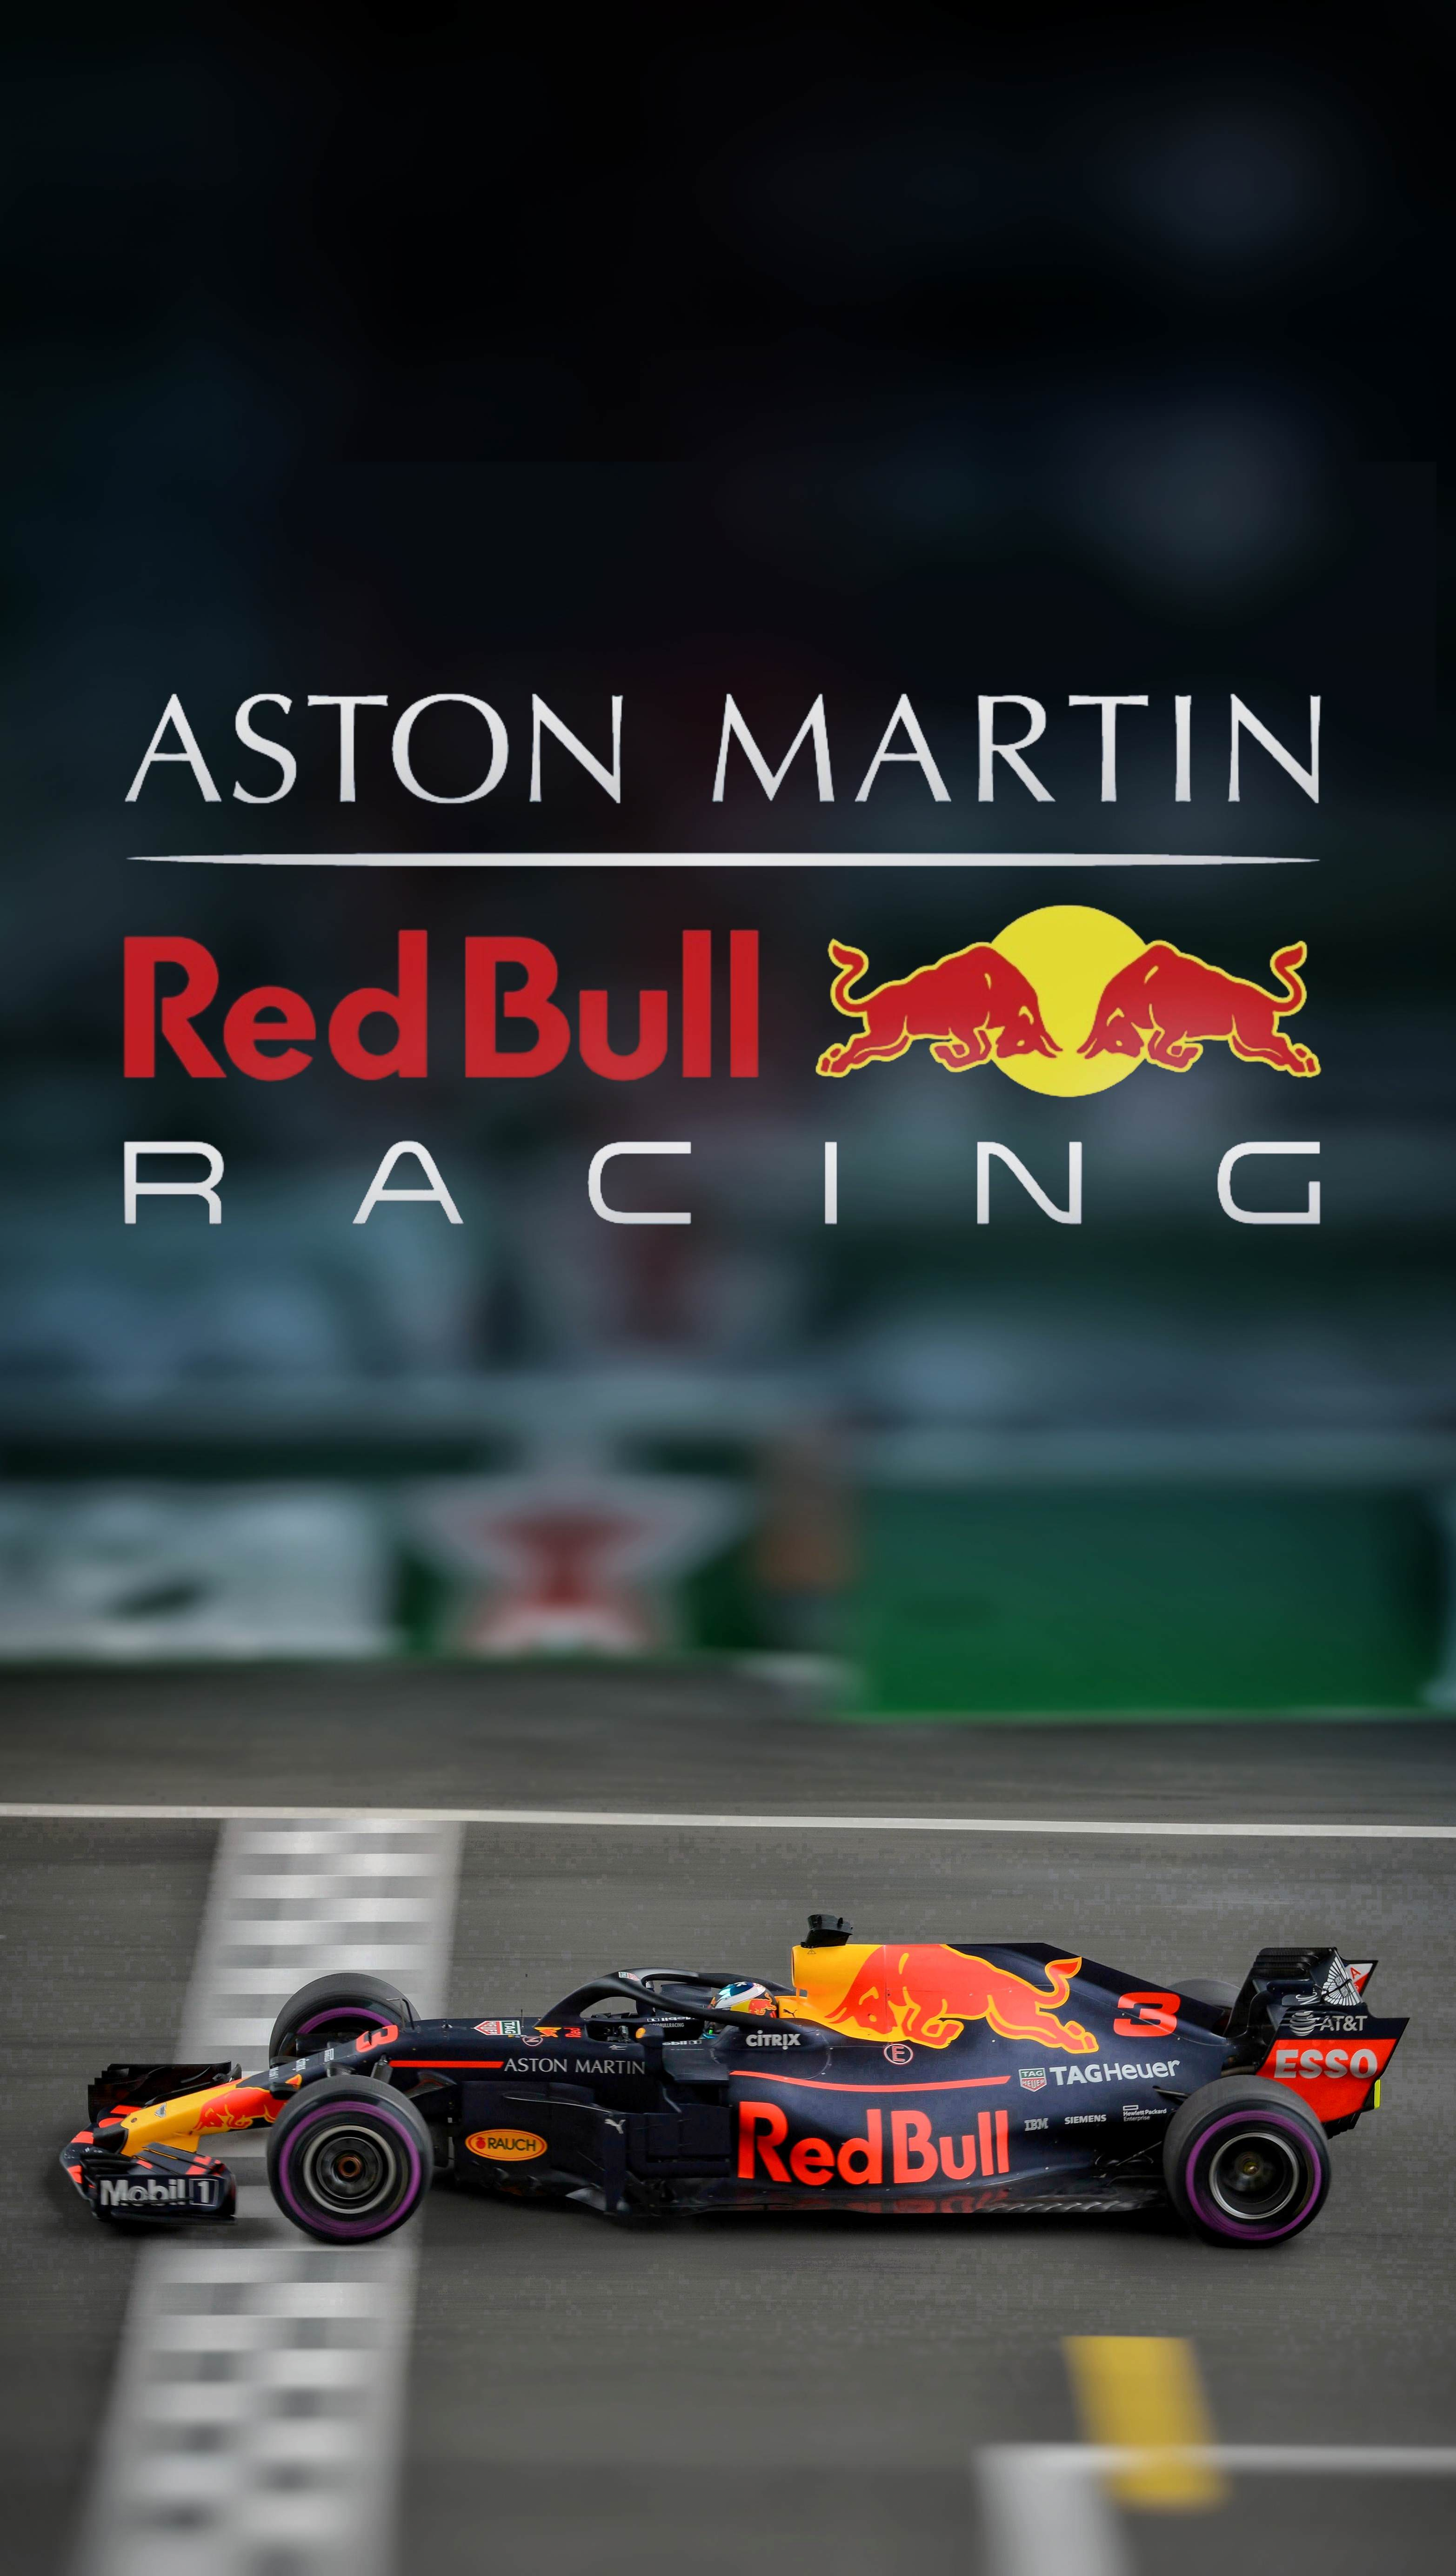 Red Bull F1 Iphone Wallpapers Wallpaper Cave